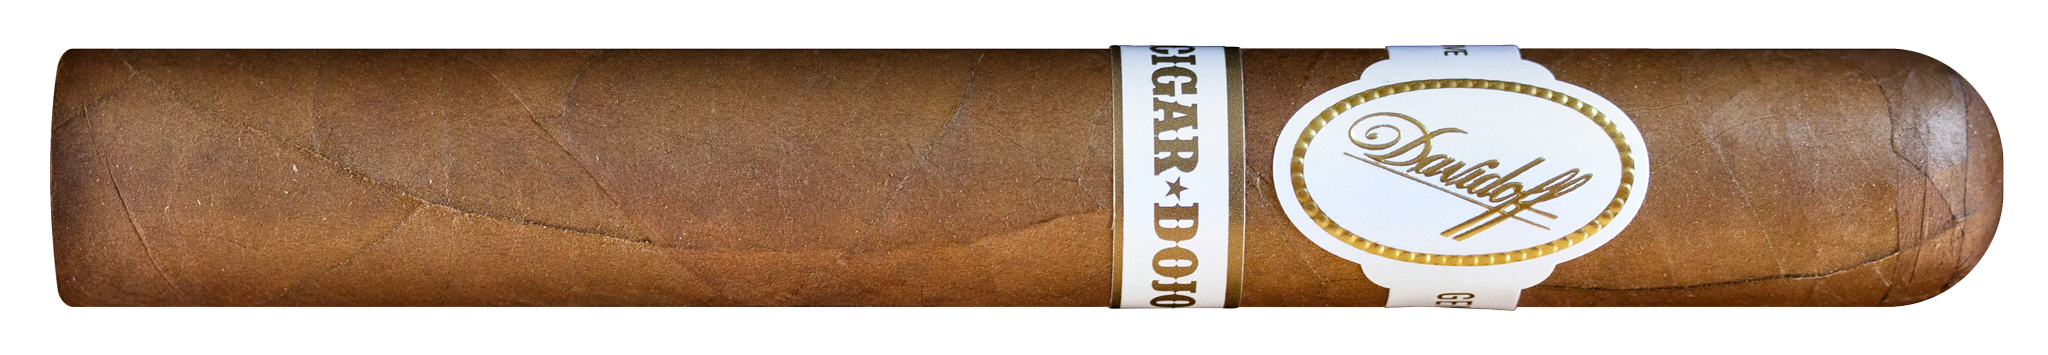 Davidoff Cigar Dojo Exclusive 2018 cigar